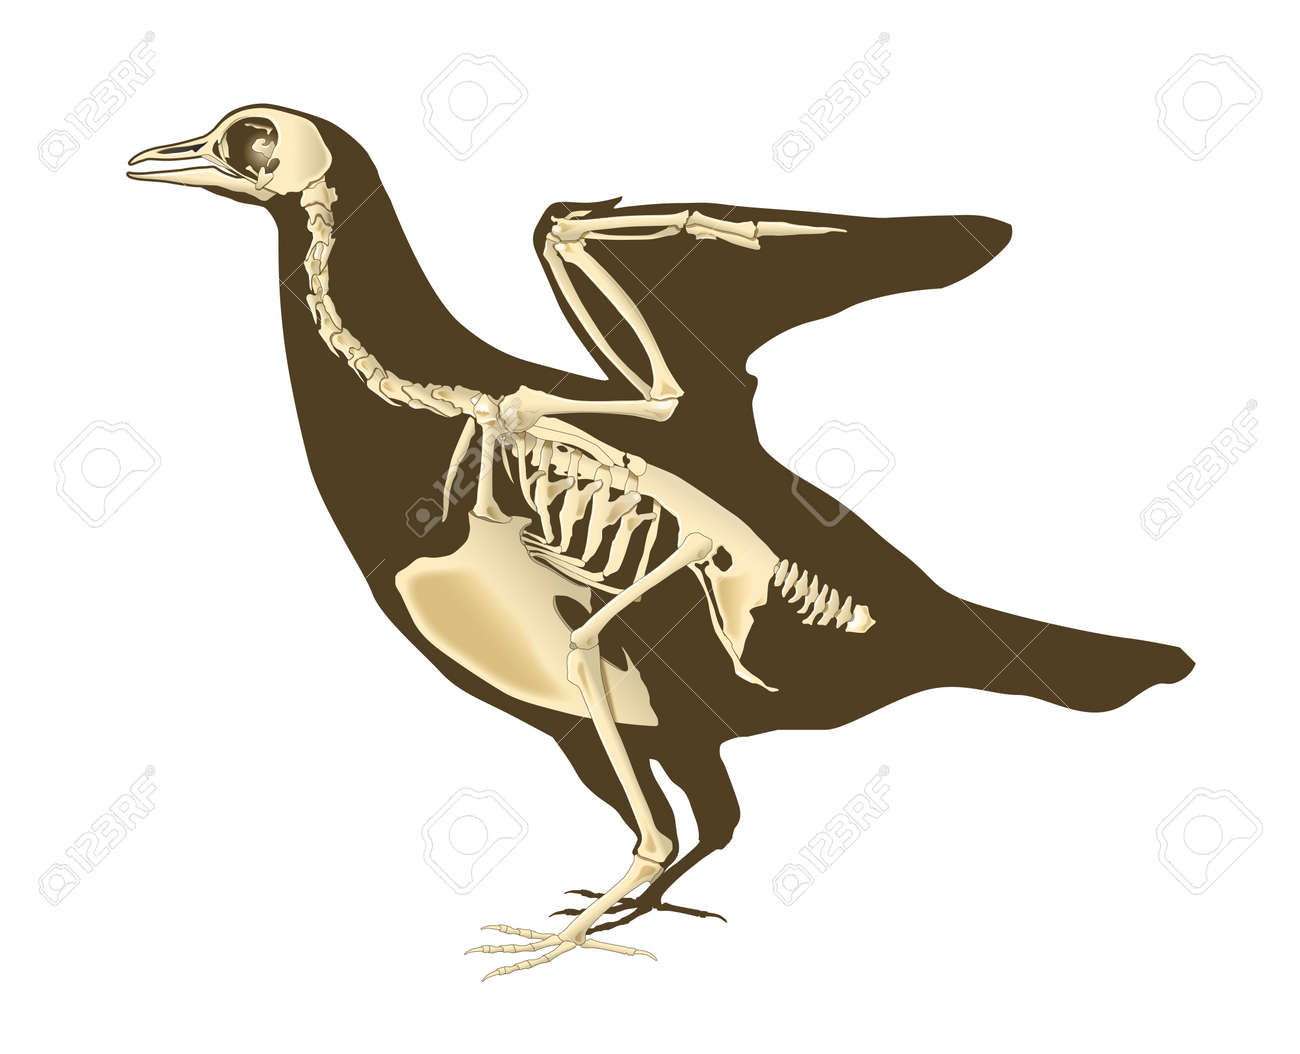 skeleton of bird section with bones radiography Stock Photo - 16304224